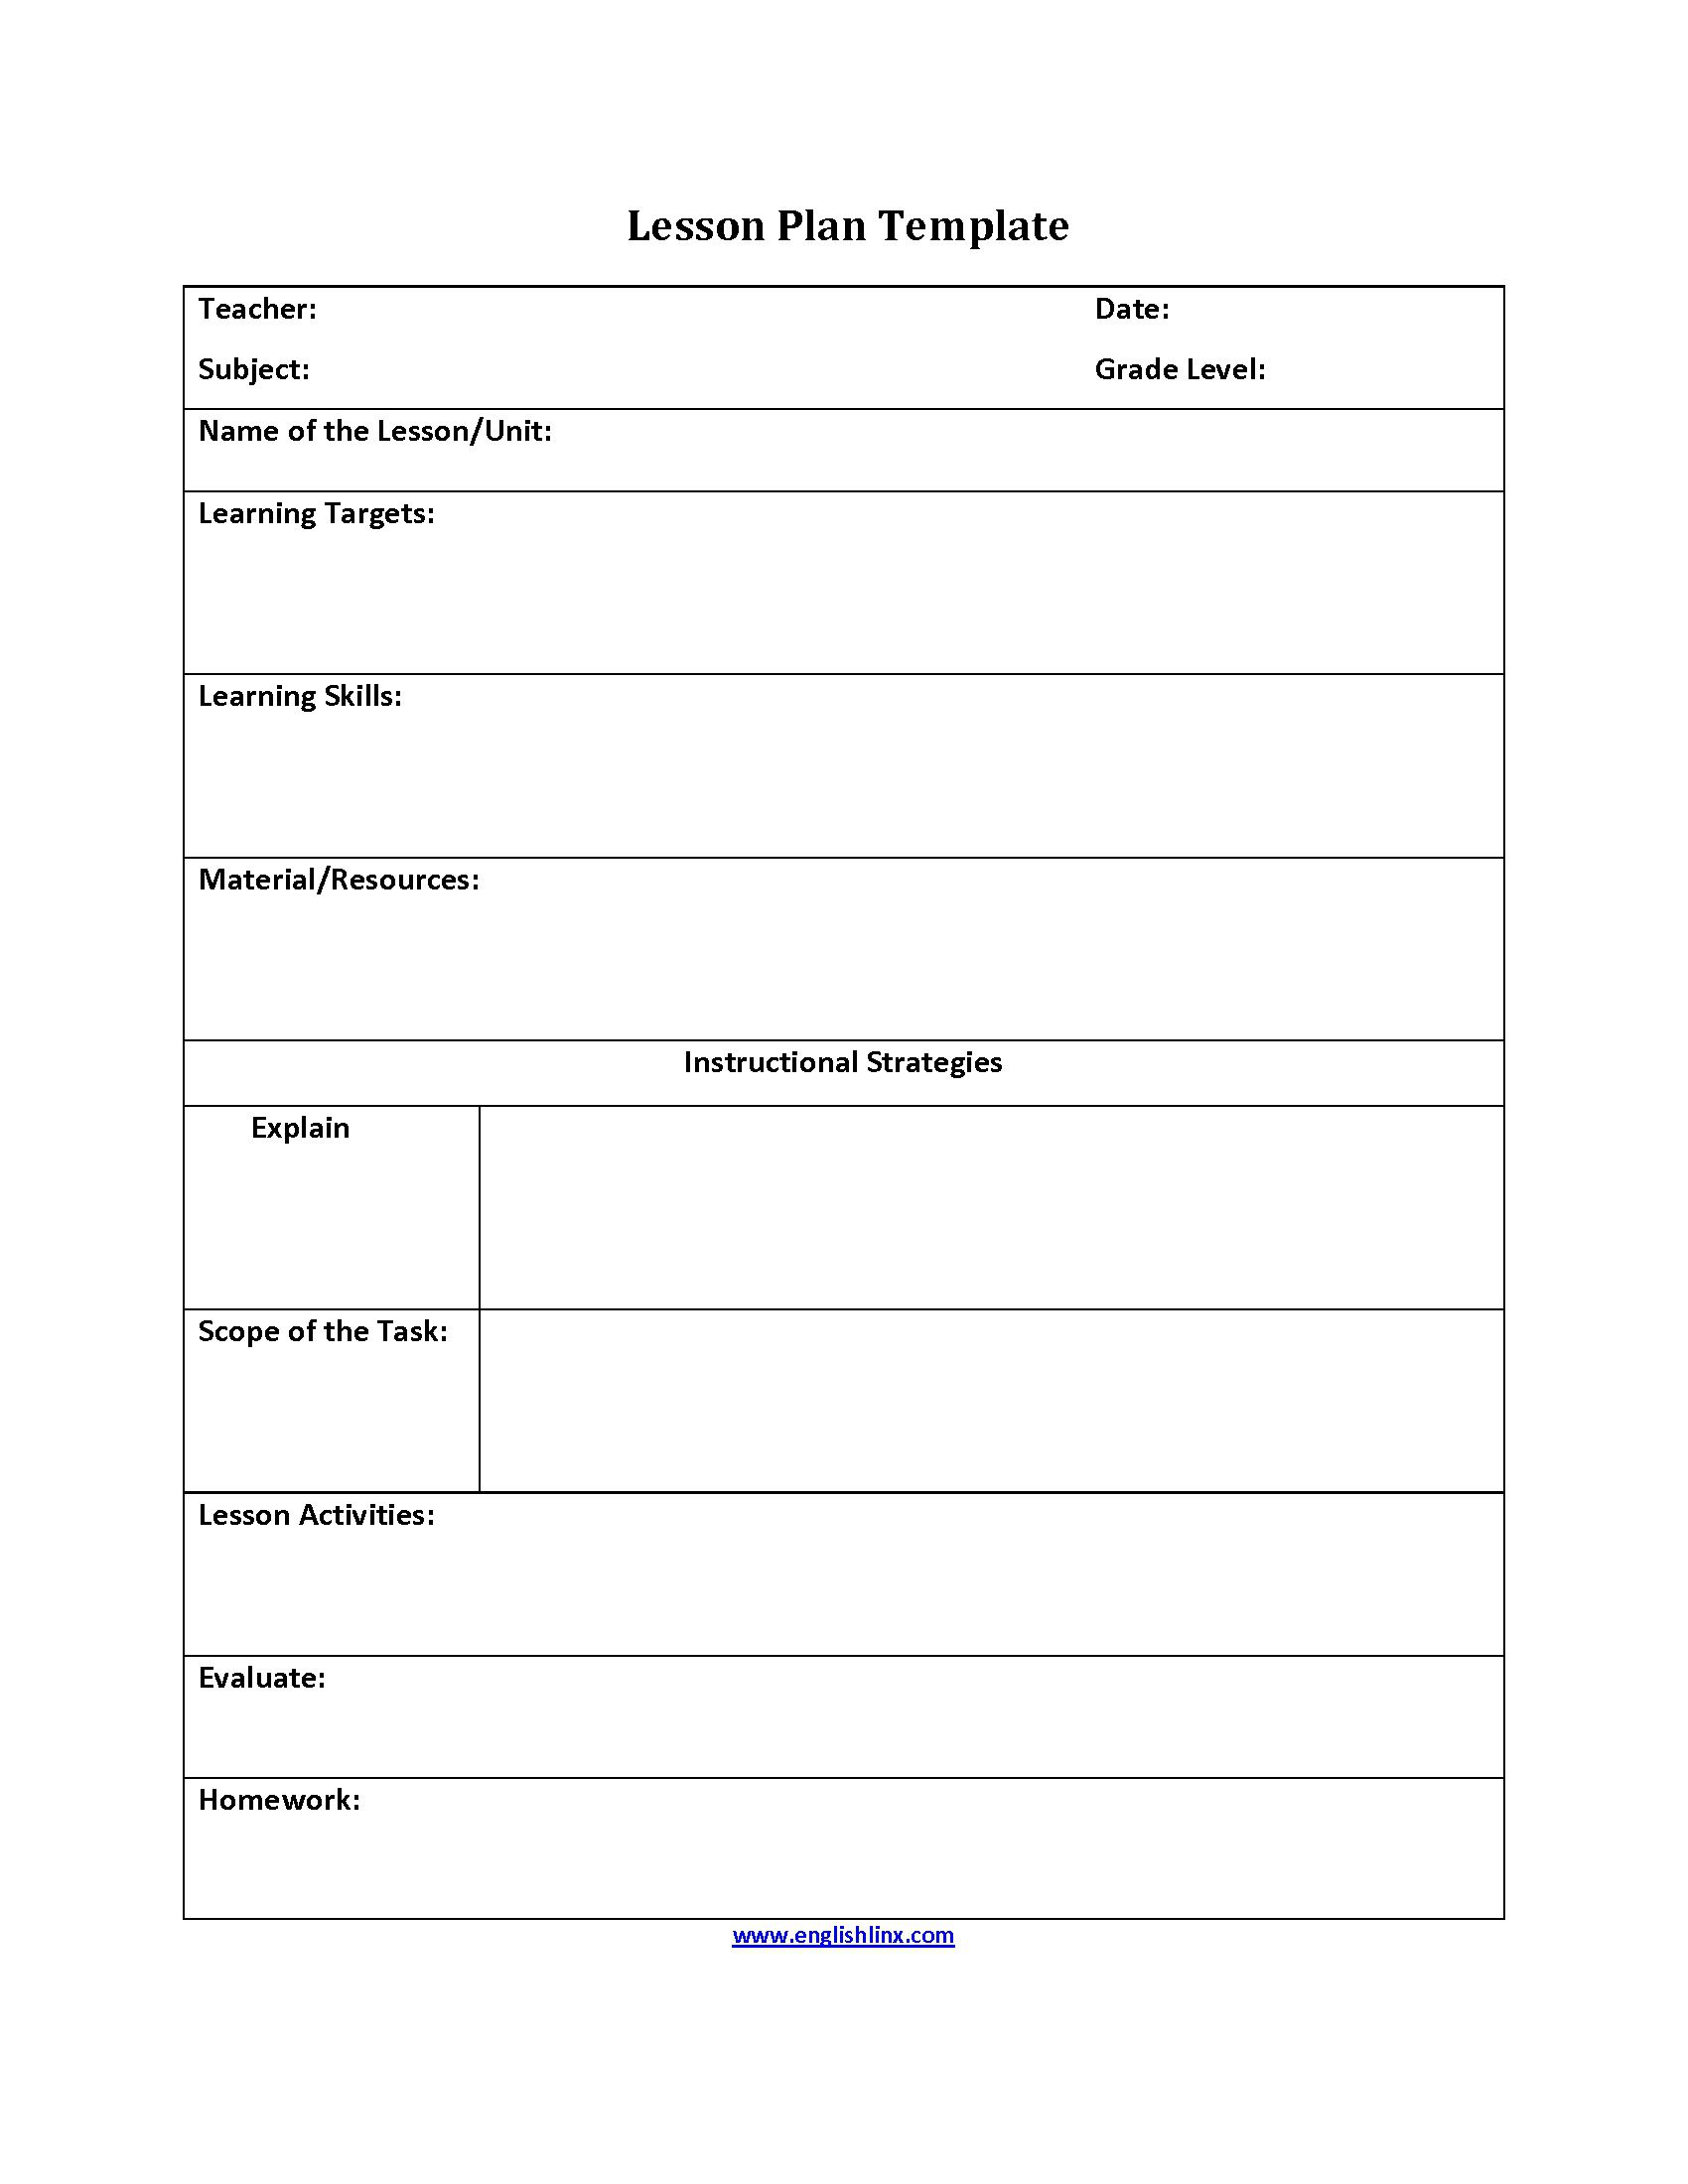 004 Remarkable Free Lesson Plan Template Word Inspiration  Preschool DocFull